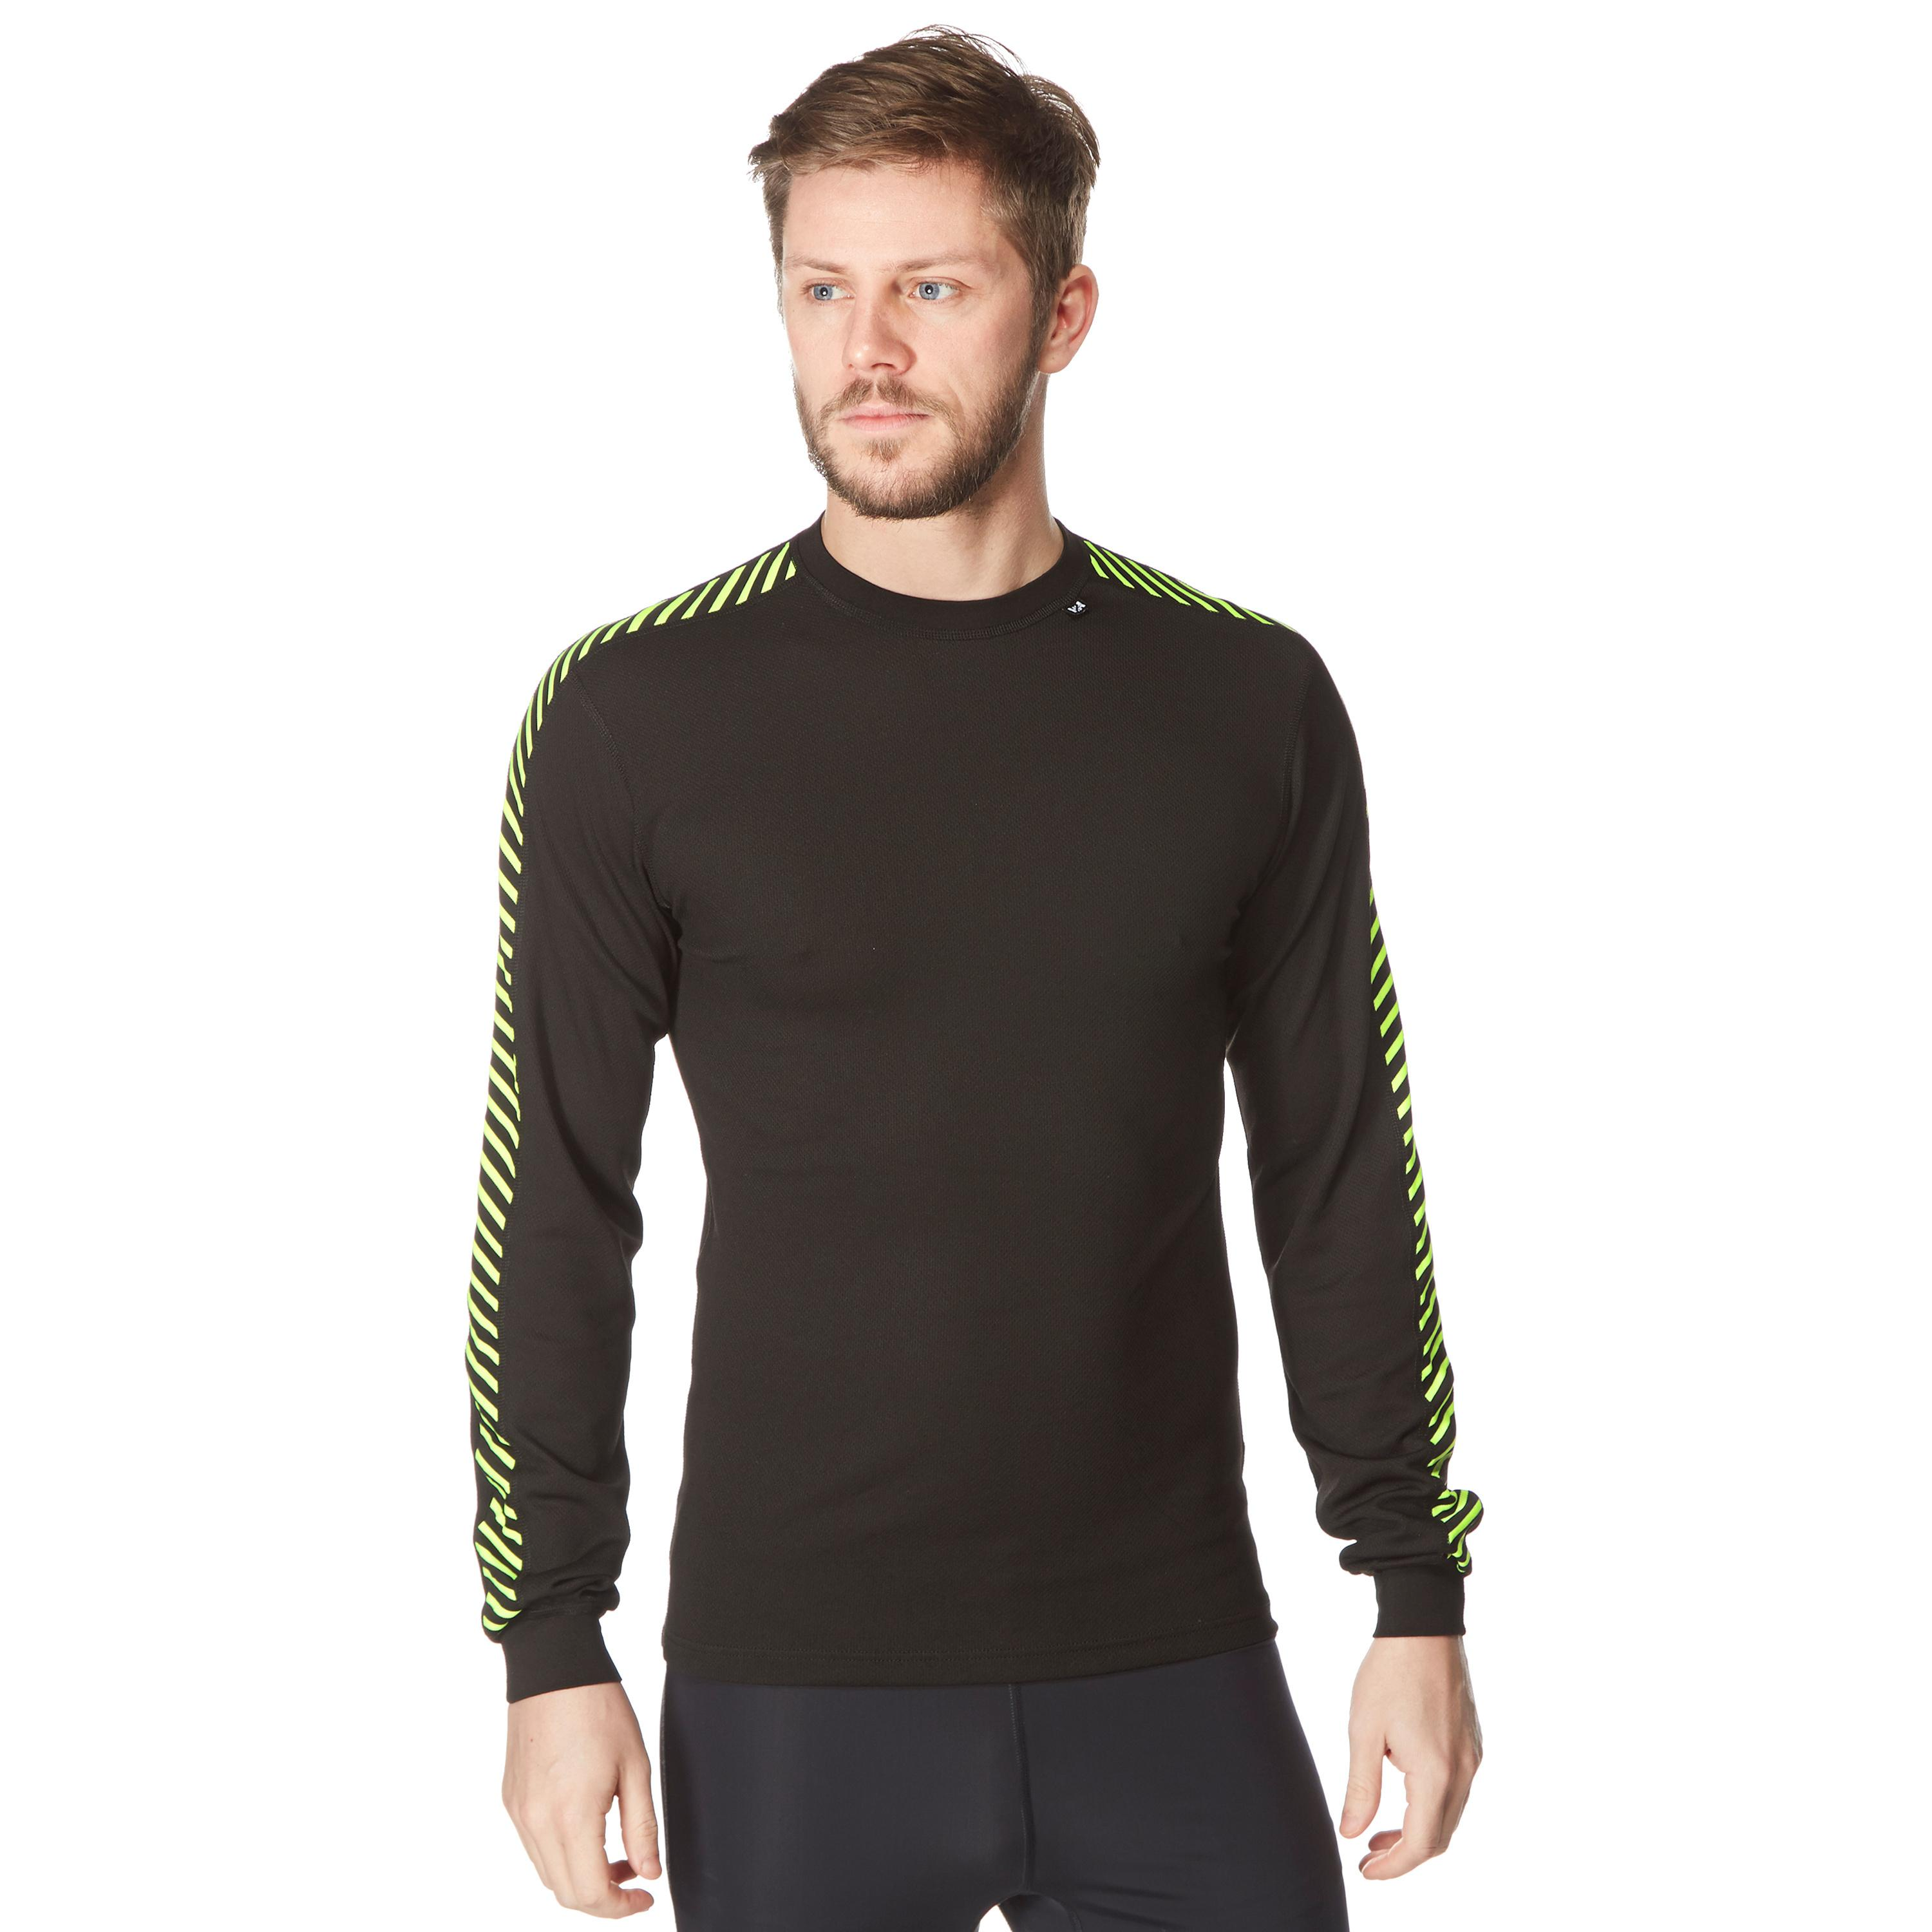 Helly Hansen Men's Dry Stripe Crew Base Layer Top, Black